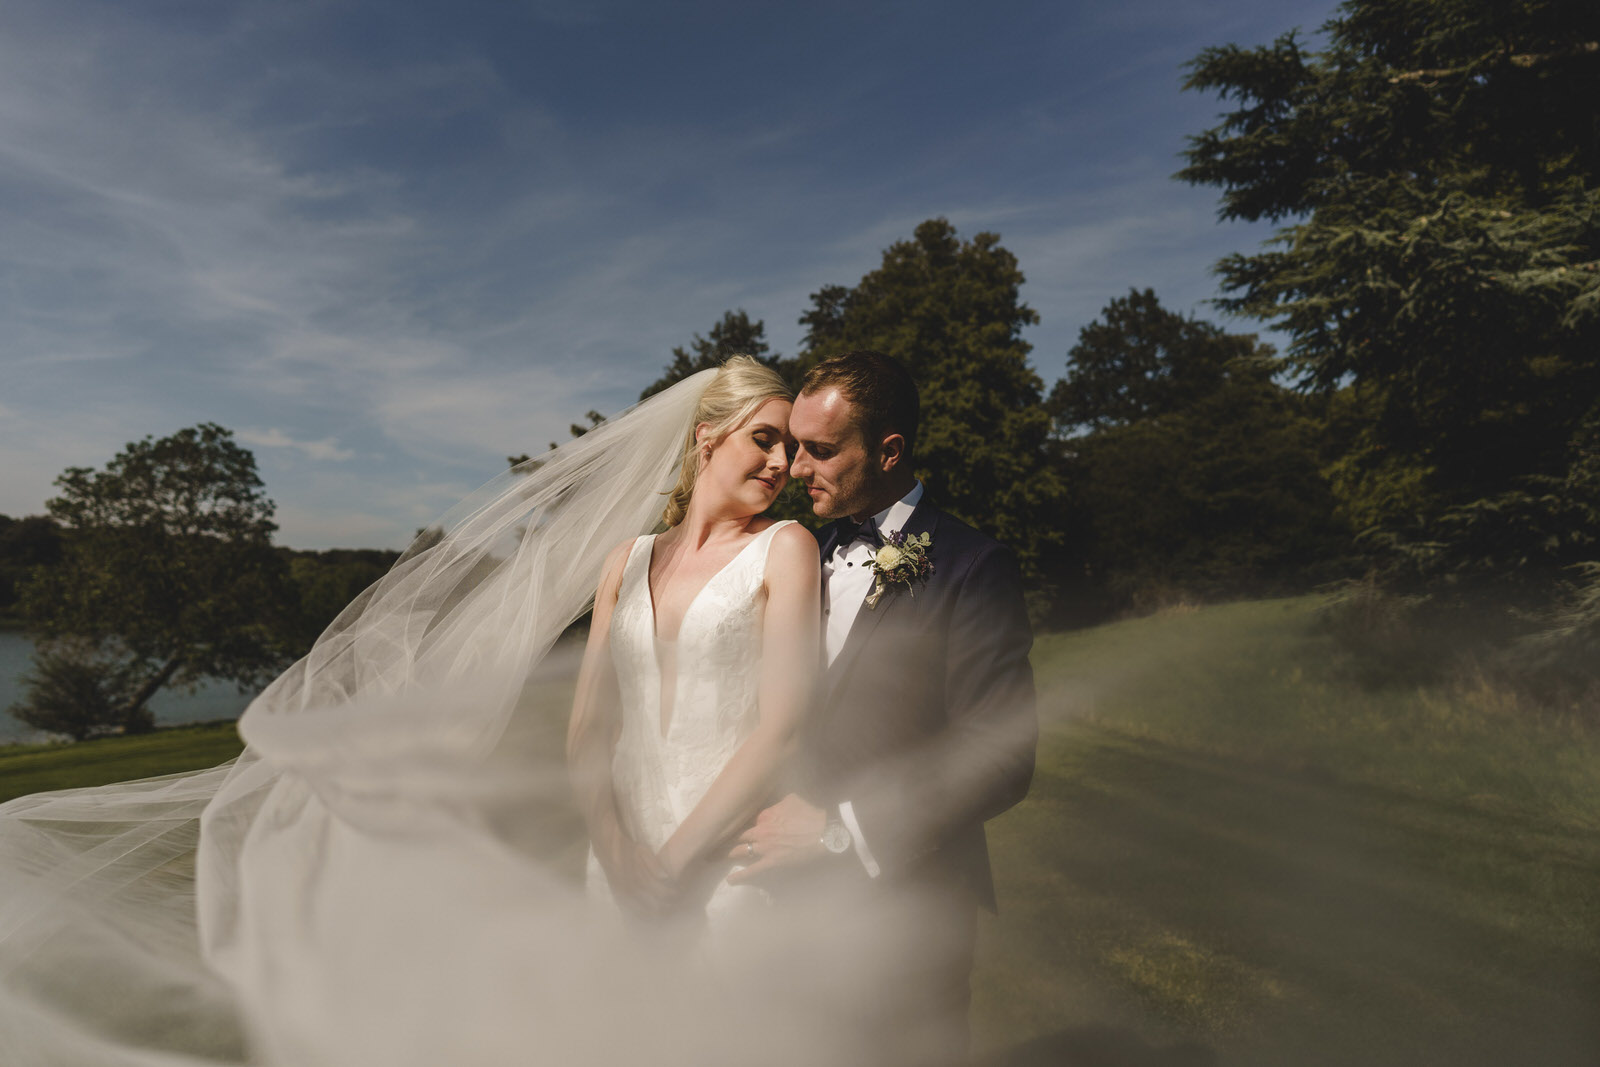 the bride and groom sharing an embrace as the brides veil is caught in the wind